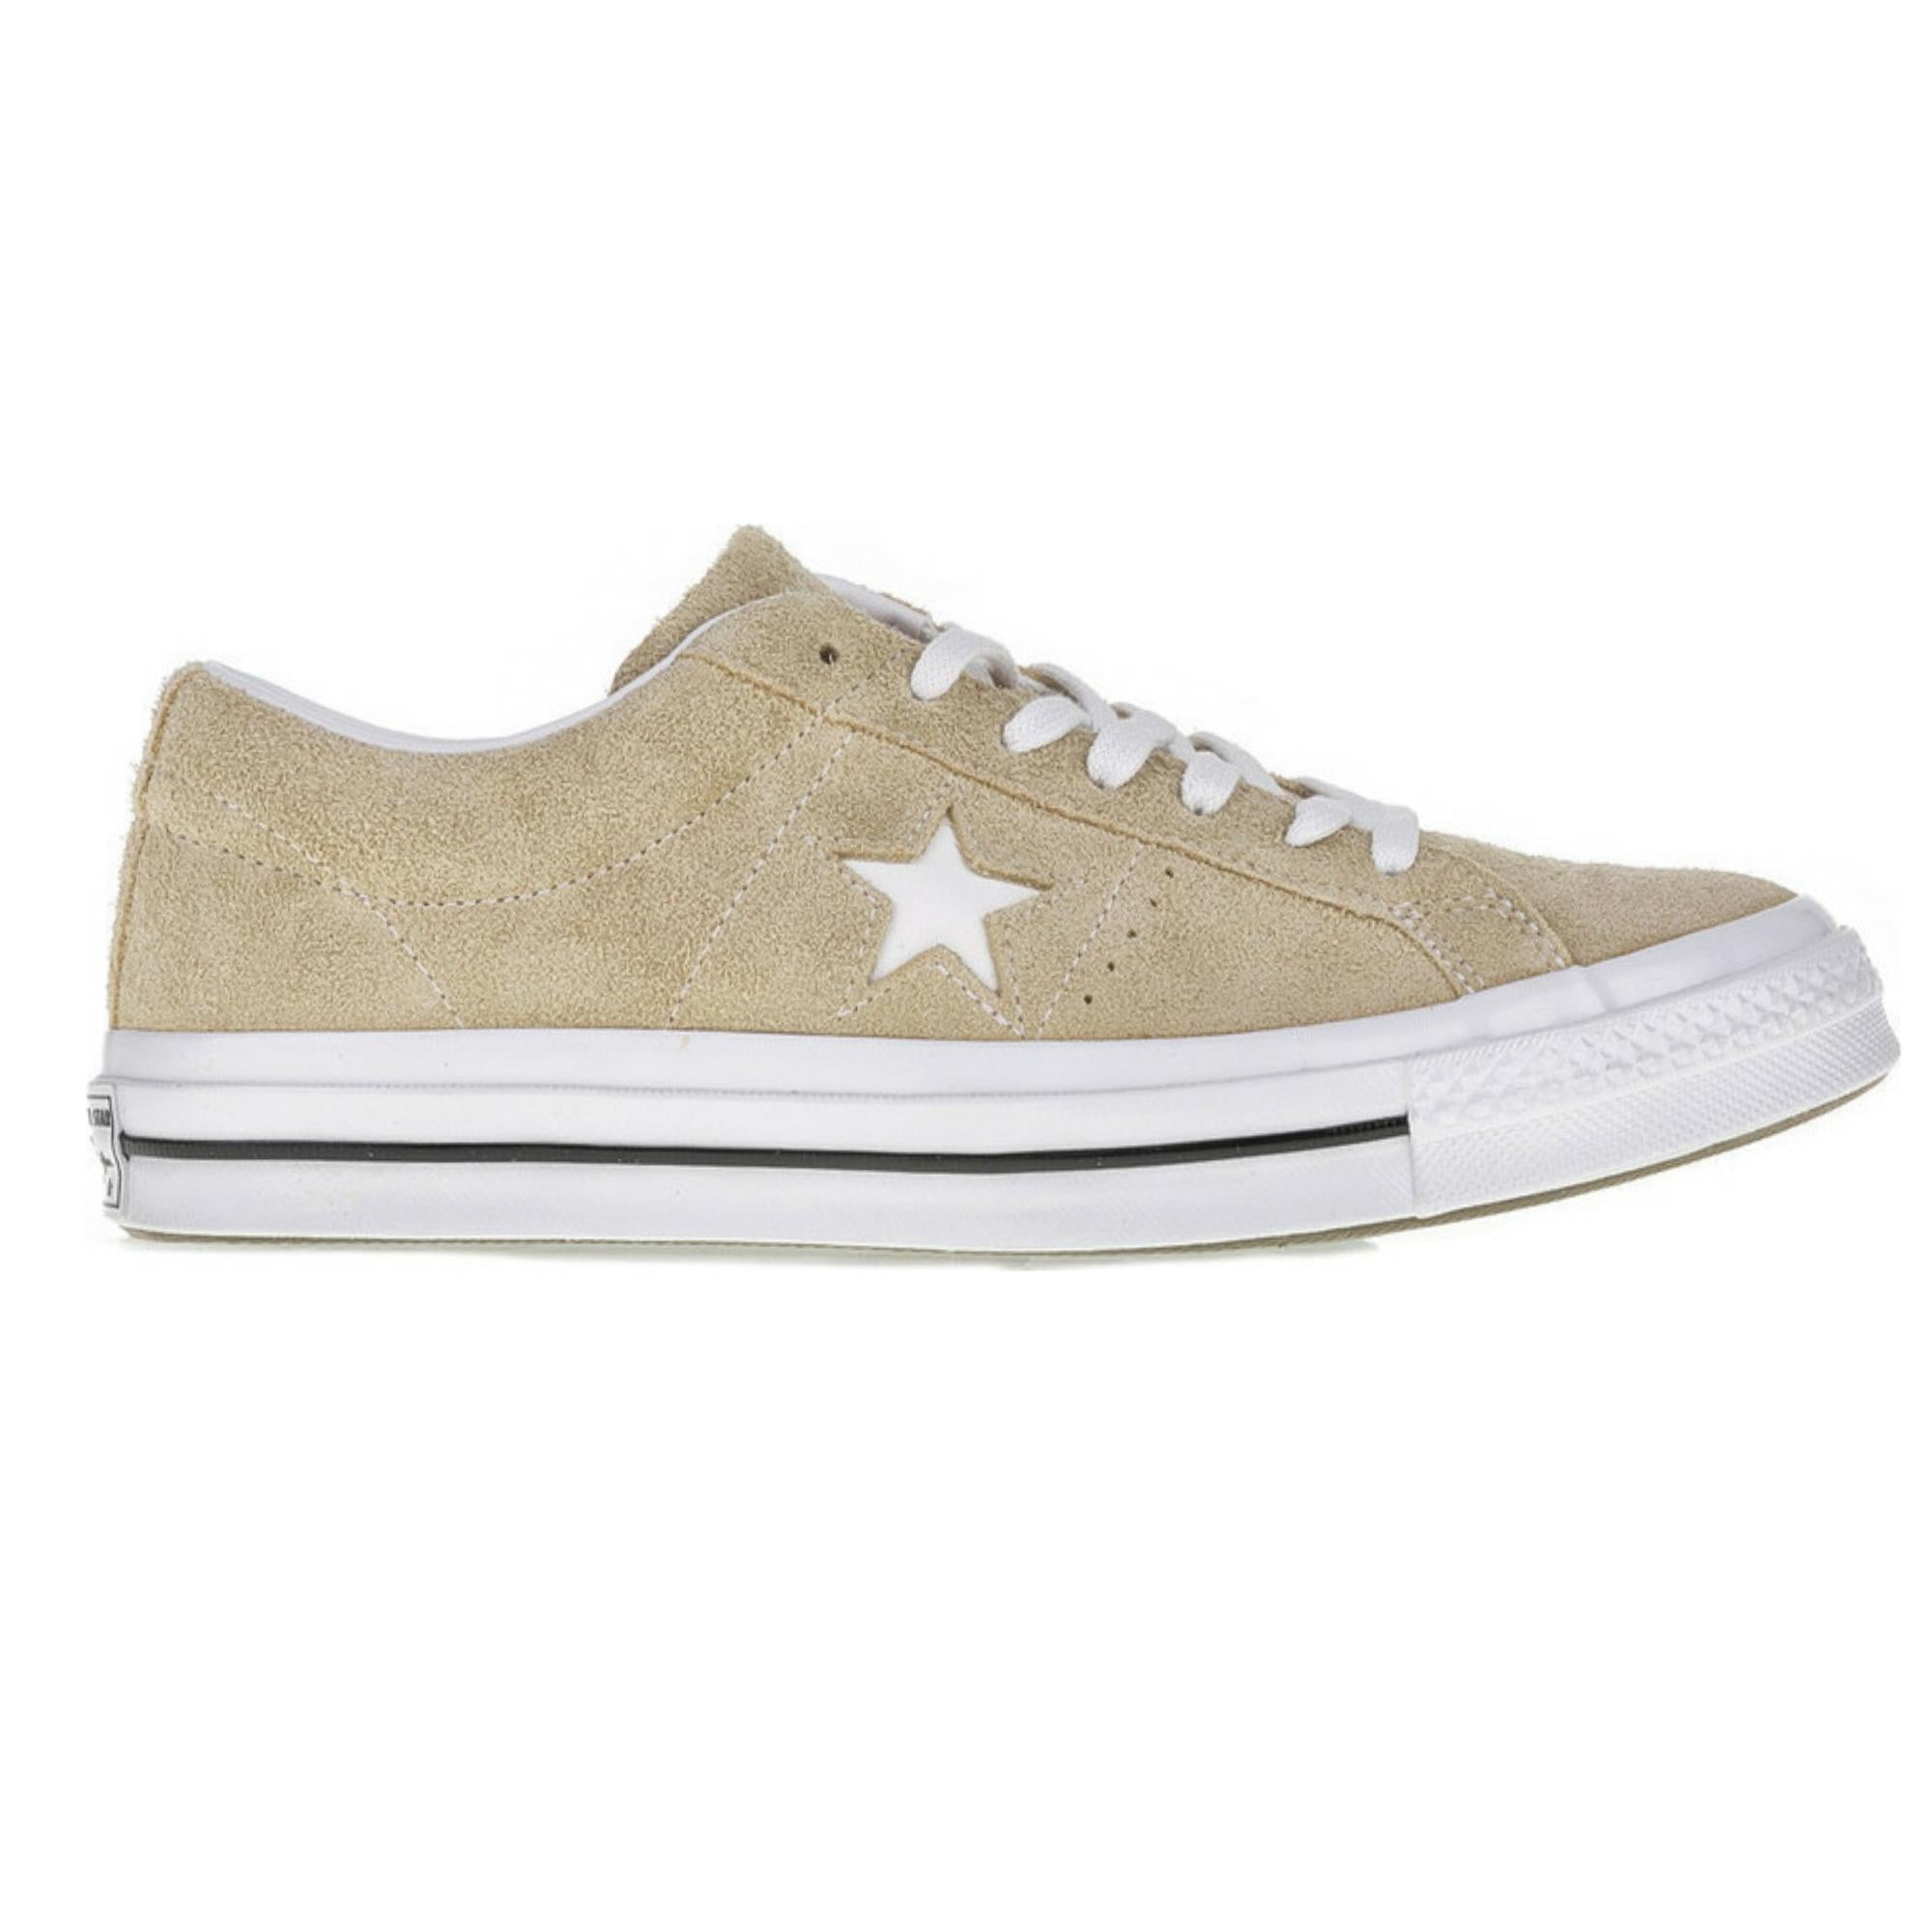 ONE STAR OX VINTAGE KHAKI/WHITE/WHITE 158435C